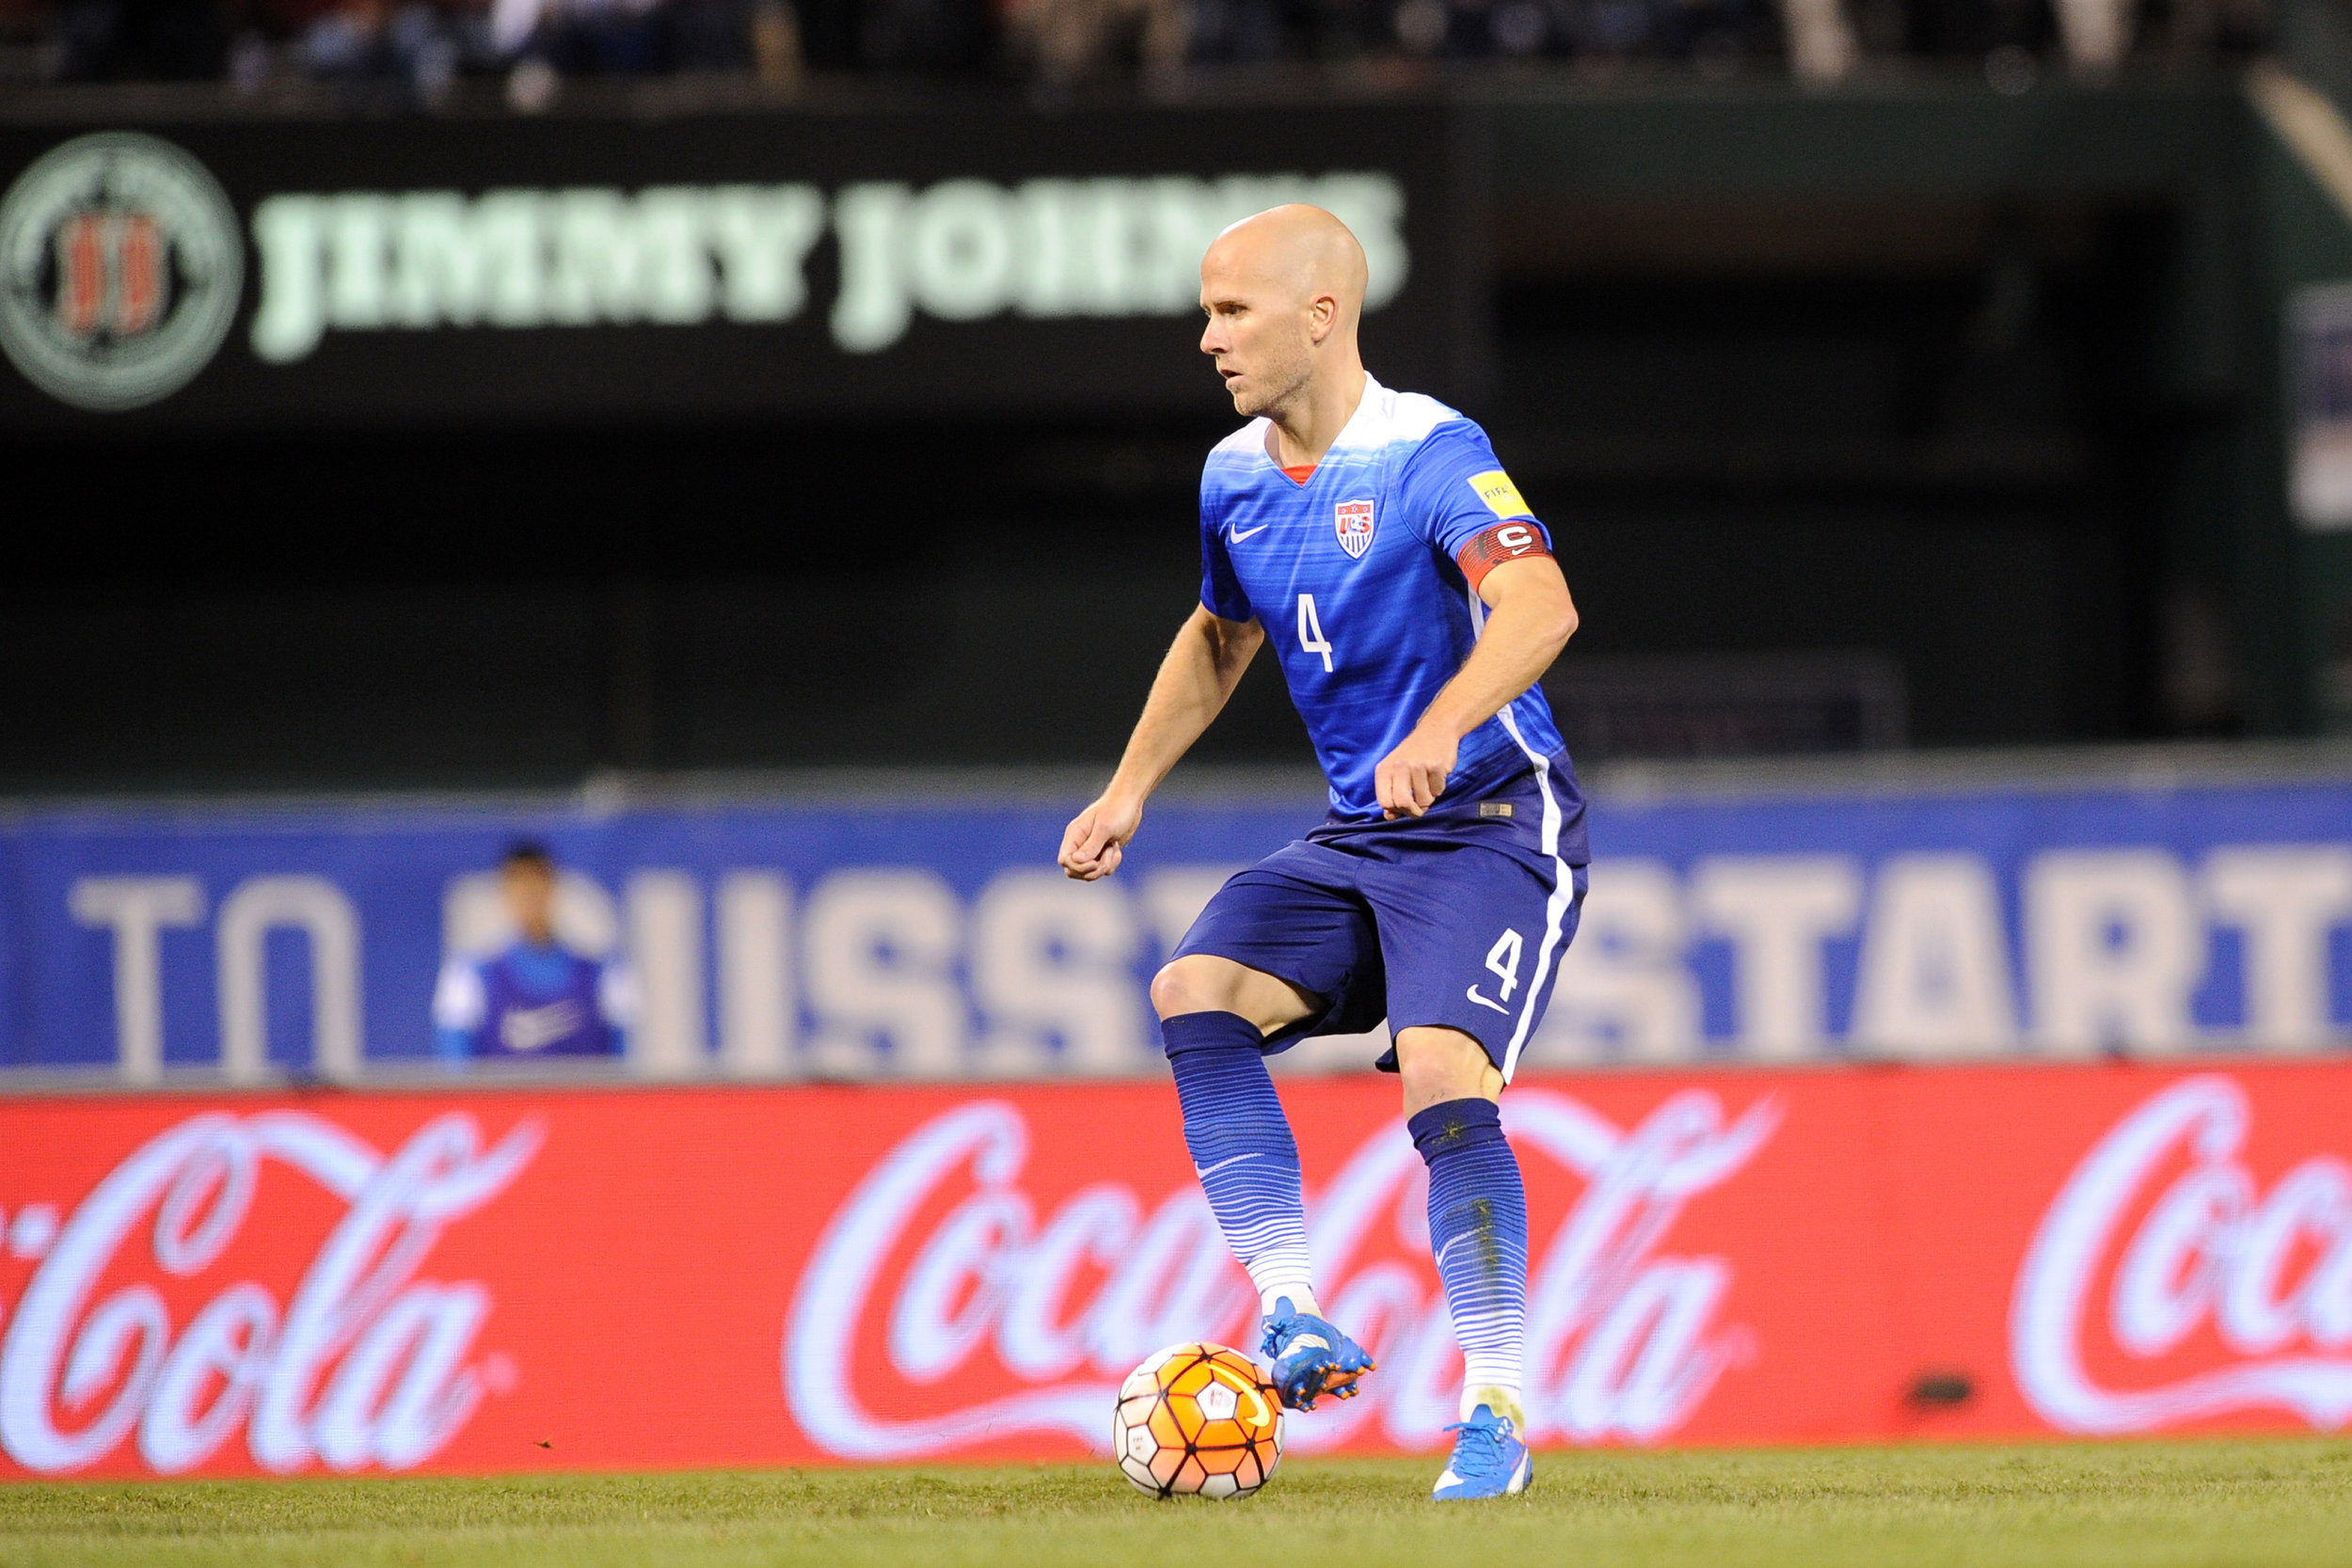 Michael Bradley St. Louis, Mo. - Friday, November 13, 2015: The USMNT defeat St. Vincent and the Grenadines 6-1 in their 2018 FIFA World Cup Qualifying match at Busch Stadium.